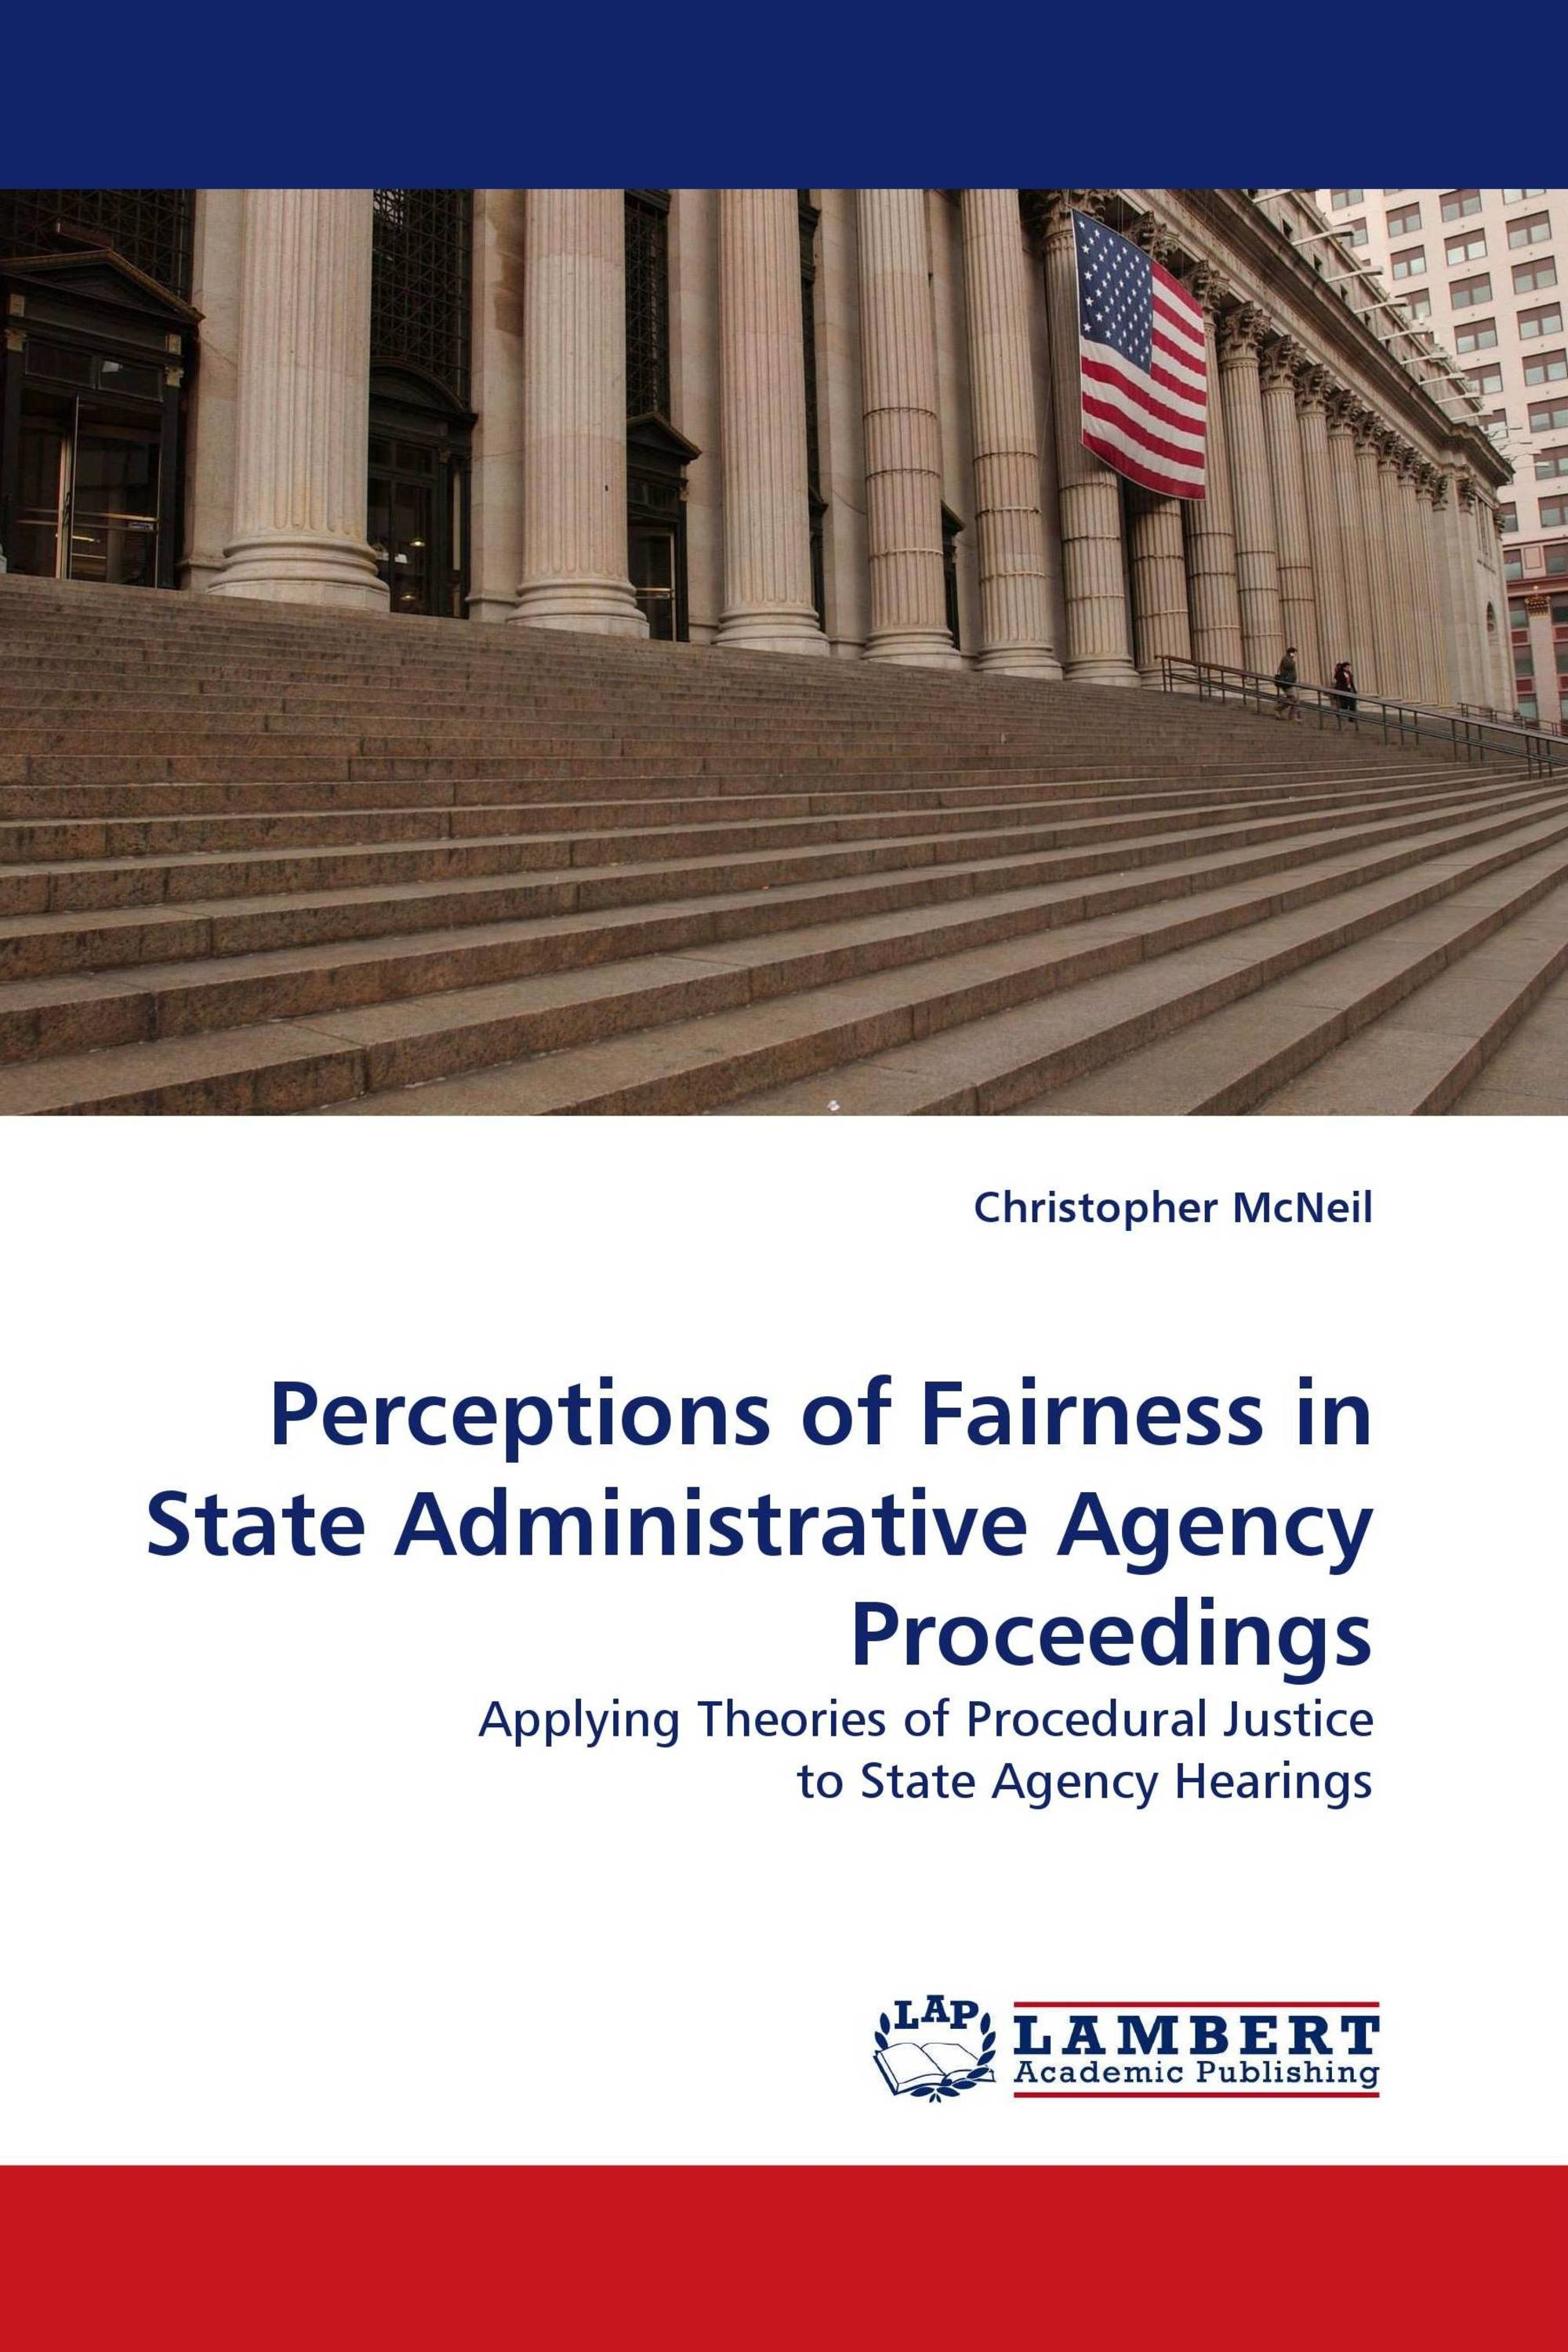 Perceptions of Fairness in State Administrative Agency Proceedings